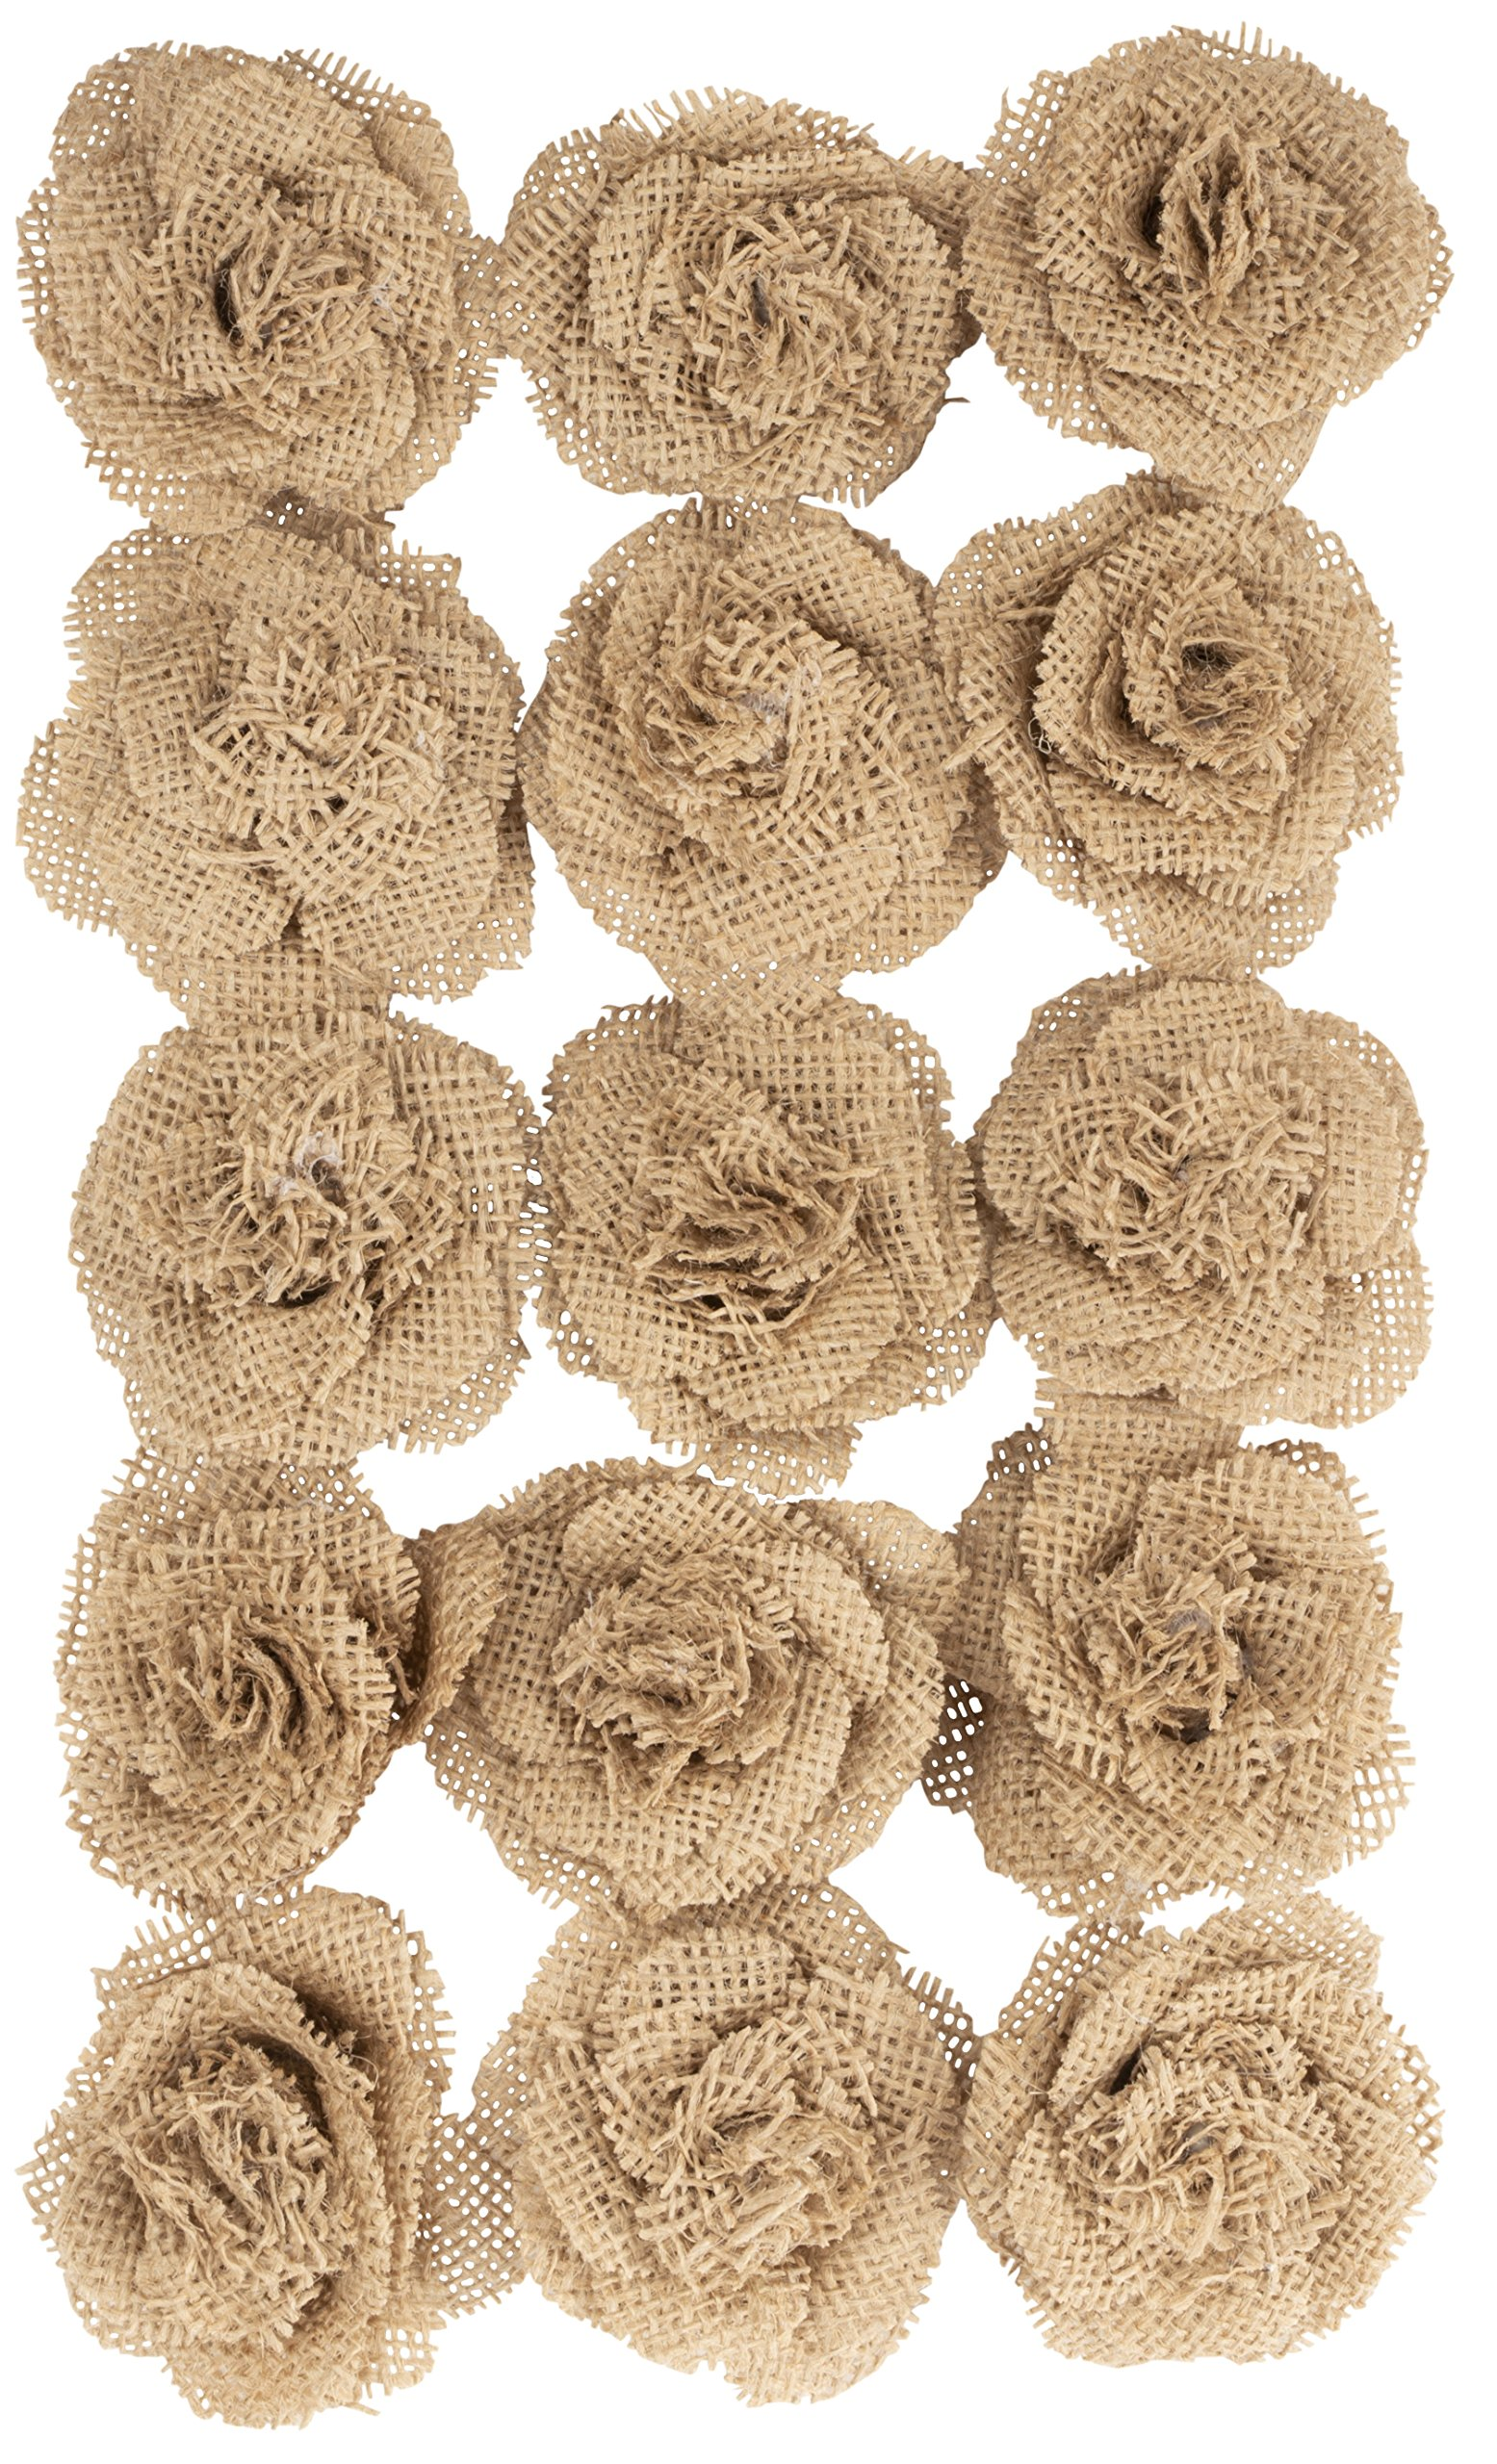 Burlap-Flowers-15-Pack-Craft-Rose-Flower-Embellishment-for-Home-Wedding-Baby-Shower-Decoration-Natural-Brown-26-inches-in-Diameter